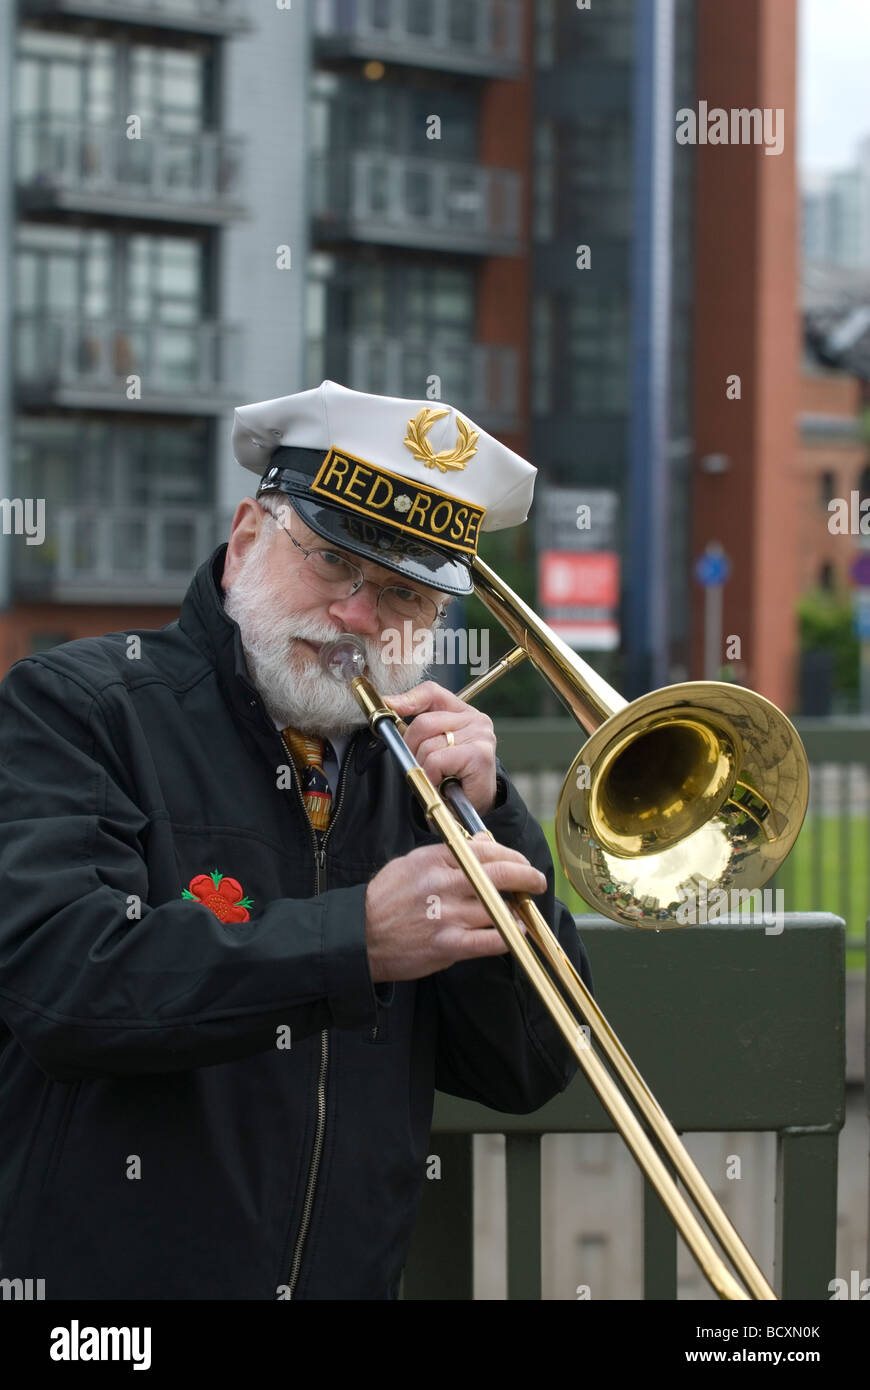 Red rose band member playing the trombone outdoors in Manchester UK - Stock Image